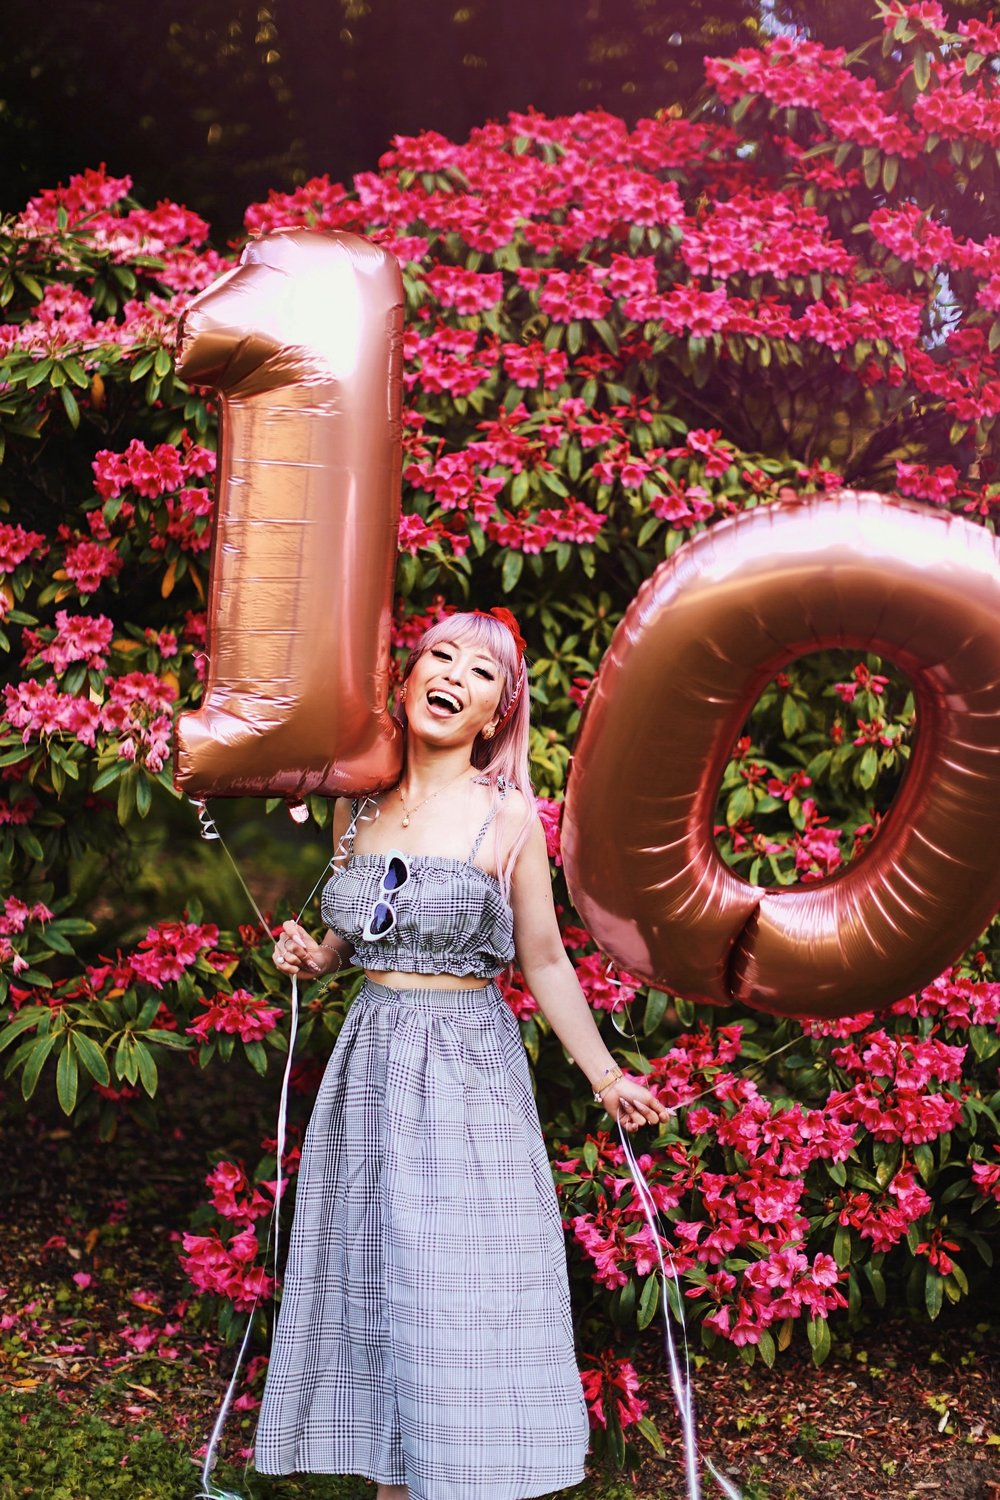 Aika's Love Closet-Seattle Style Life Style Blogger-Japanese-10 Year Anniversary-living in America-what I've learned from Living Abroad-life lessons-pink hair-zero uv heart sunglasses-rose gold balloons-smile 20